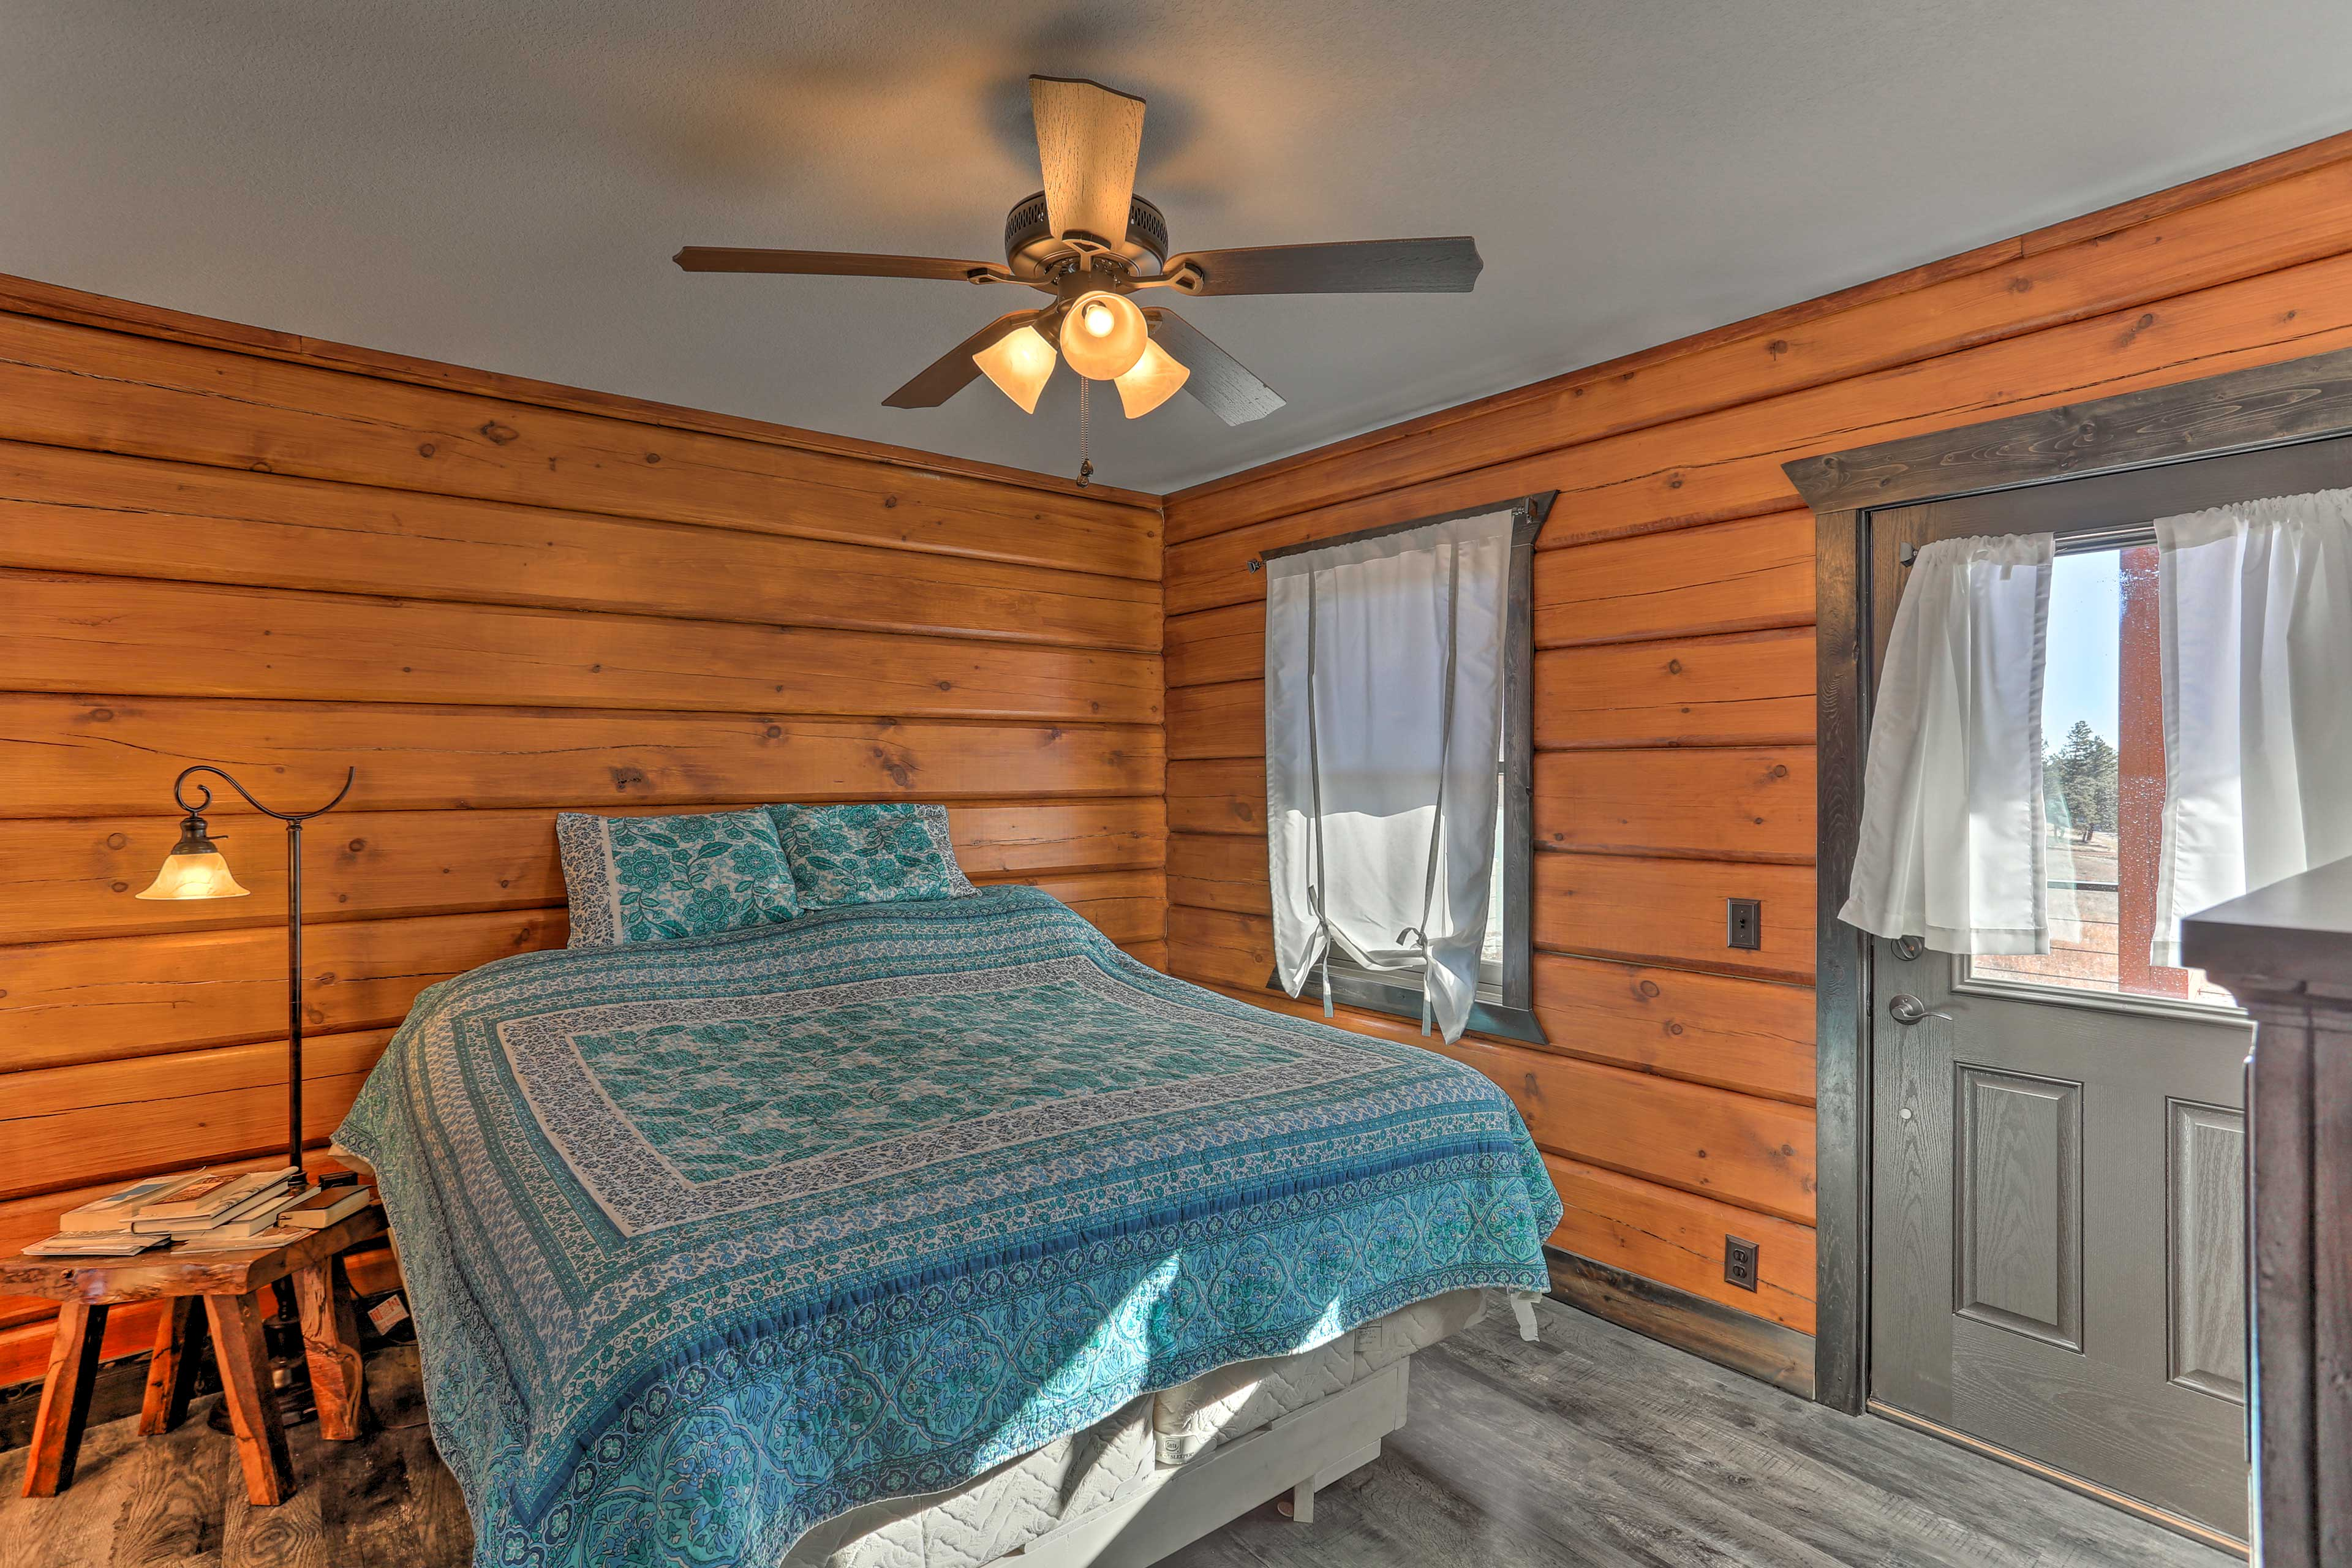 The second bedroom hosts a plush king bed.